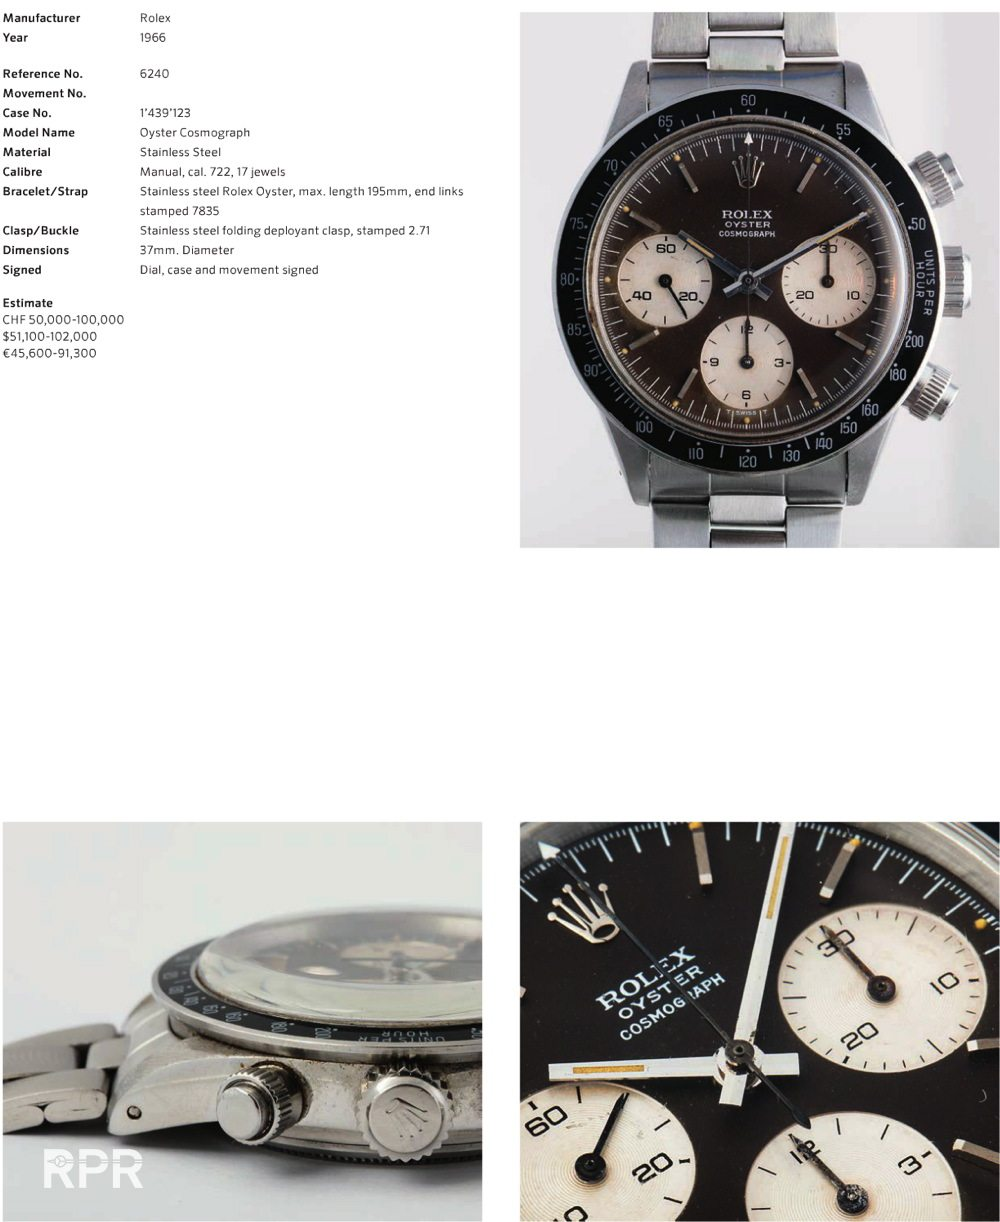 RPR_Rolex_geneva_auction_2015_43